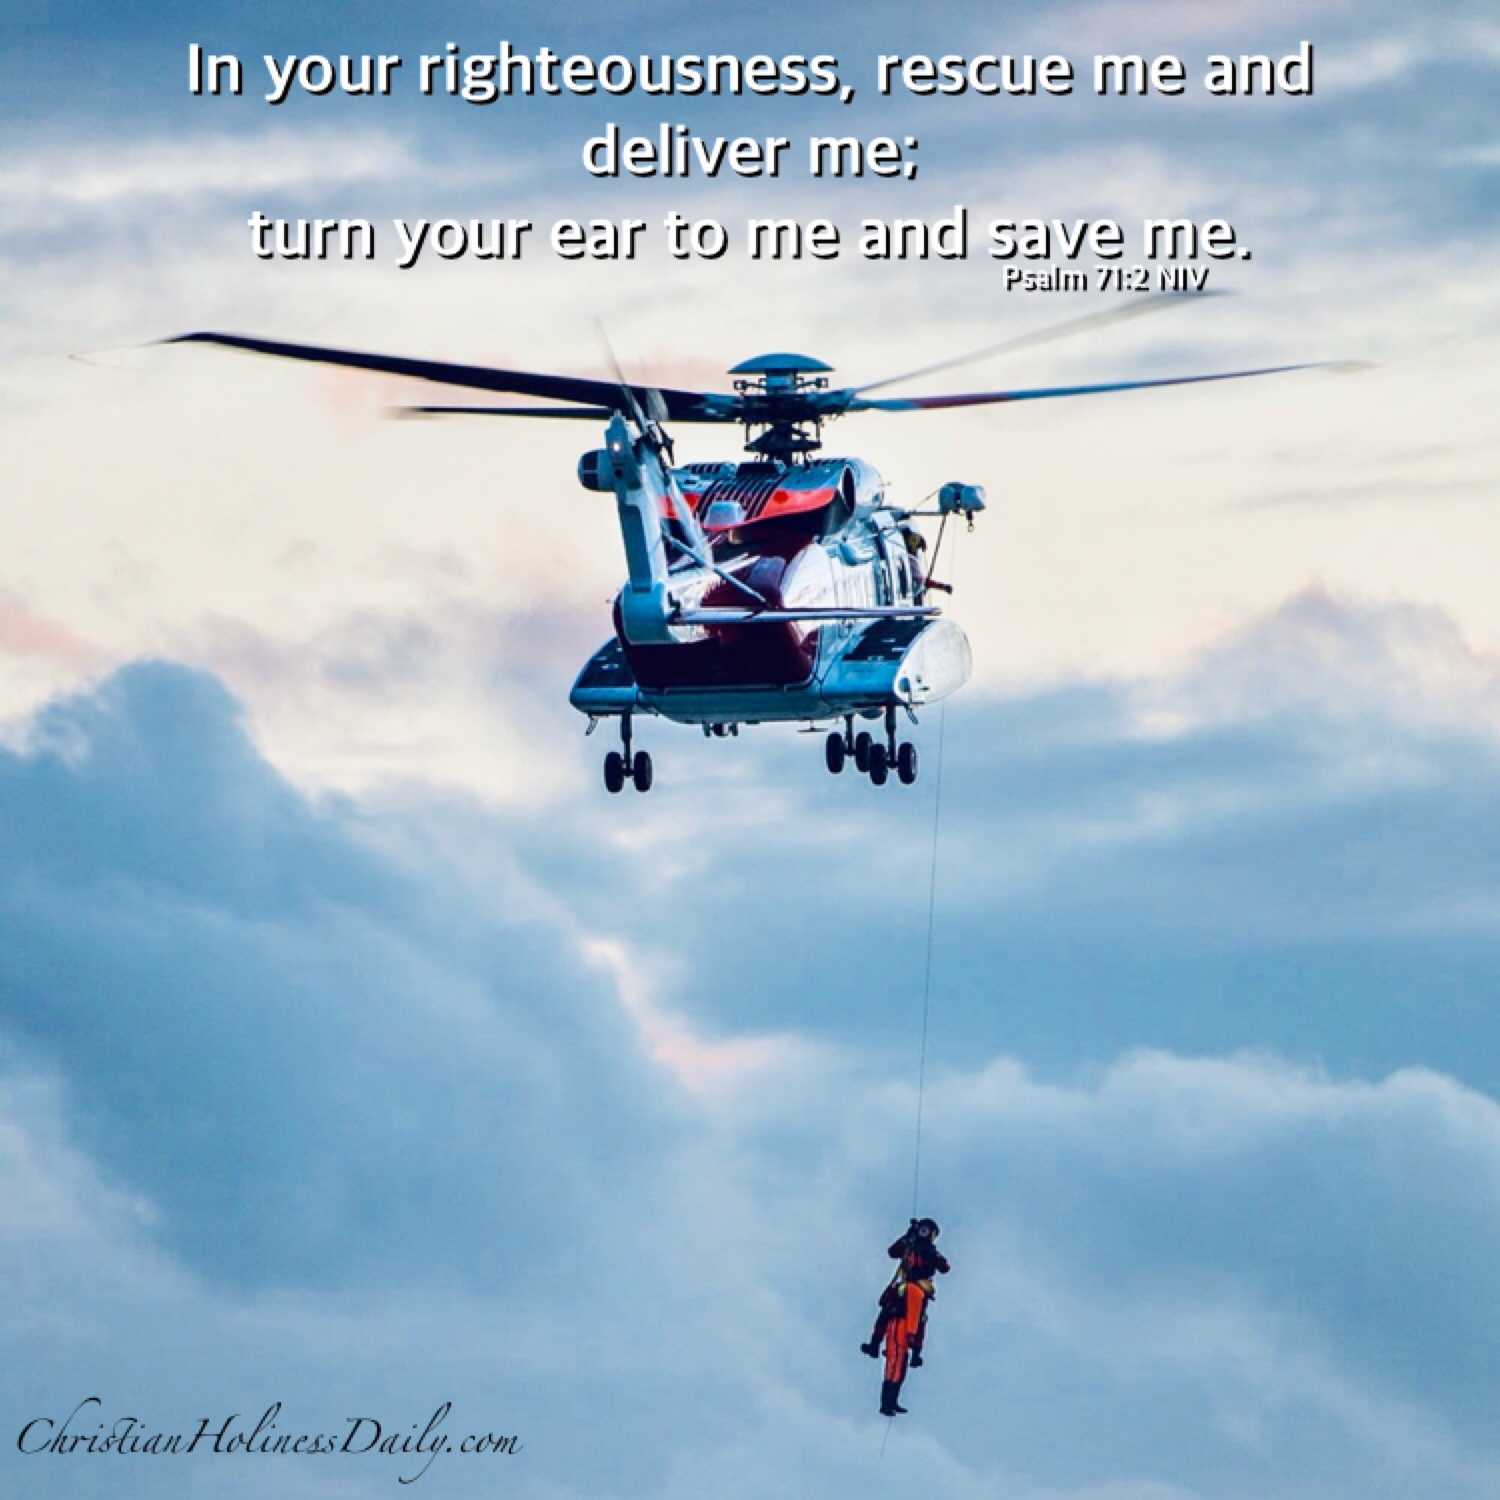 In your righteousness rescue me.